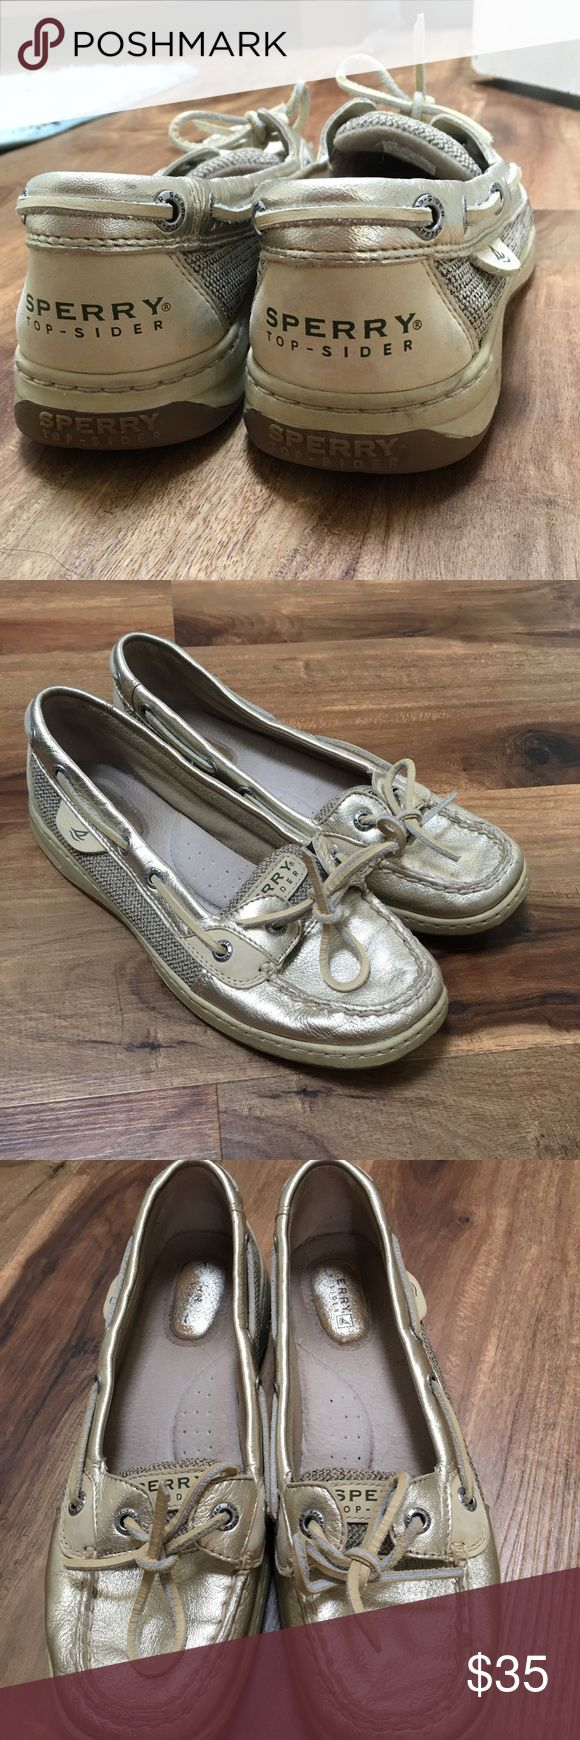 Sperry Angelfish size 7.5 Sperry's Angelfish boat shoe size 7.5 available. Lightly worn, but otherwise in good condition. A feminine twist on the classic boat shoe with a gold toe and accents. Sperry Top-Sider Shoes Flats & Loafers